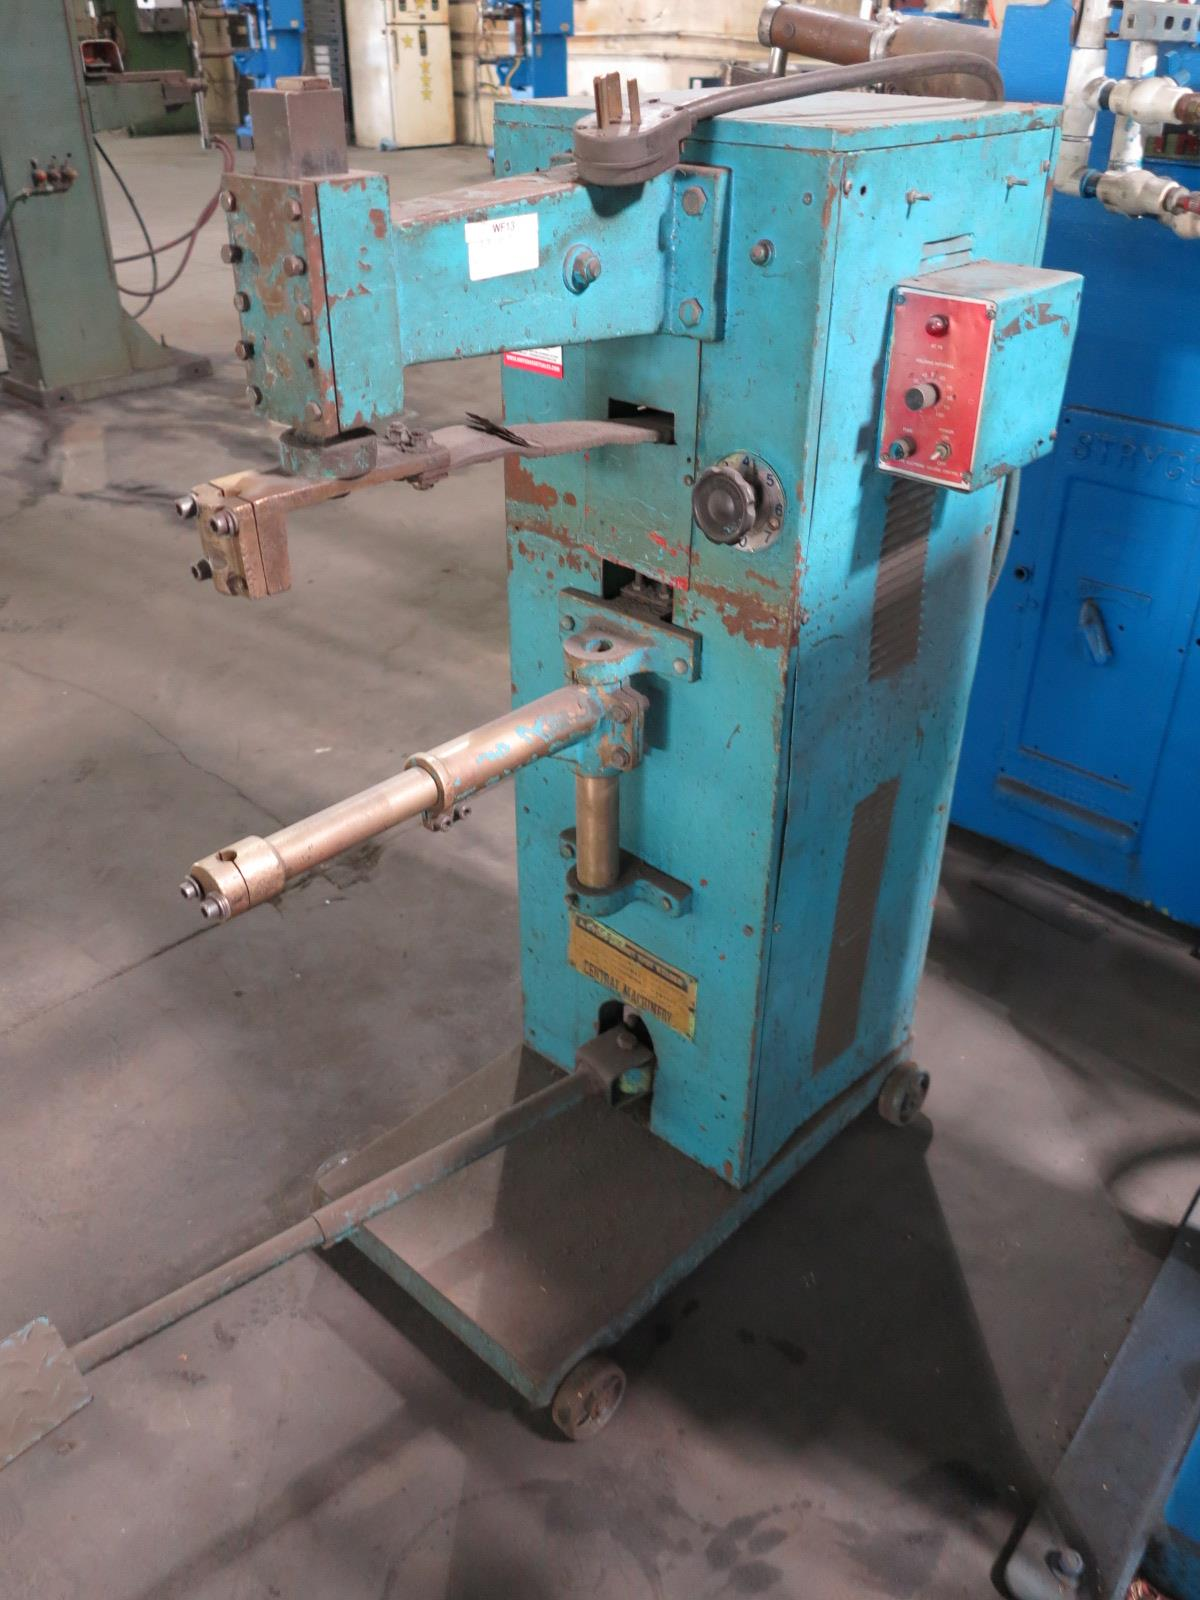 "CENTRAL MACHINERY SPOT WELDER, 25 KVA X 16"", DATA PLATE UNREADABLE - Image 2 of 2"